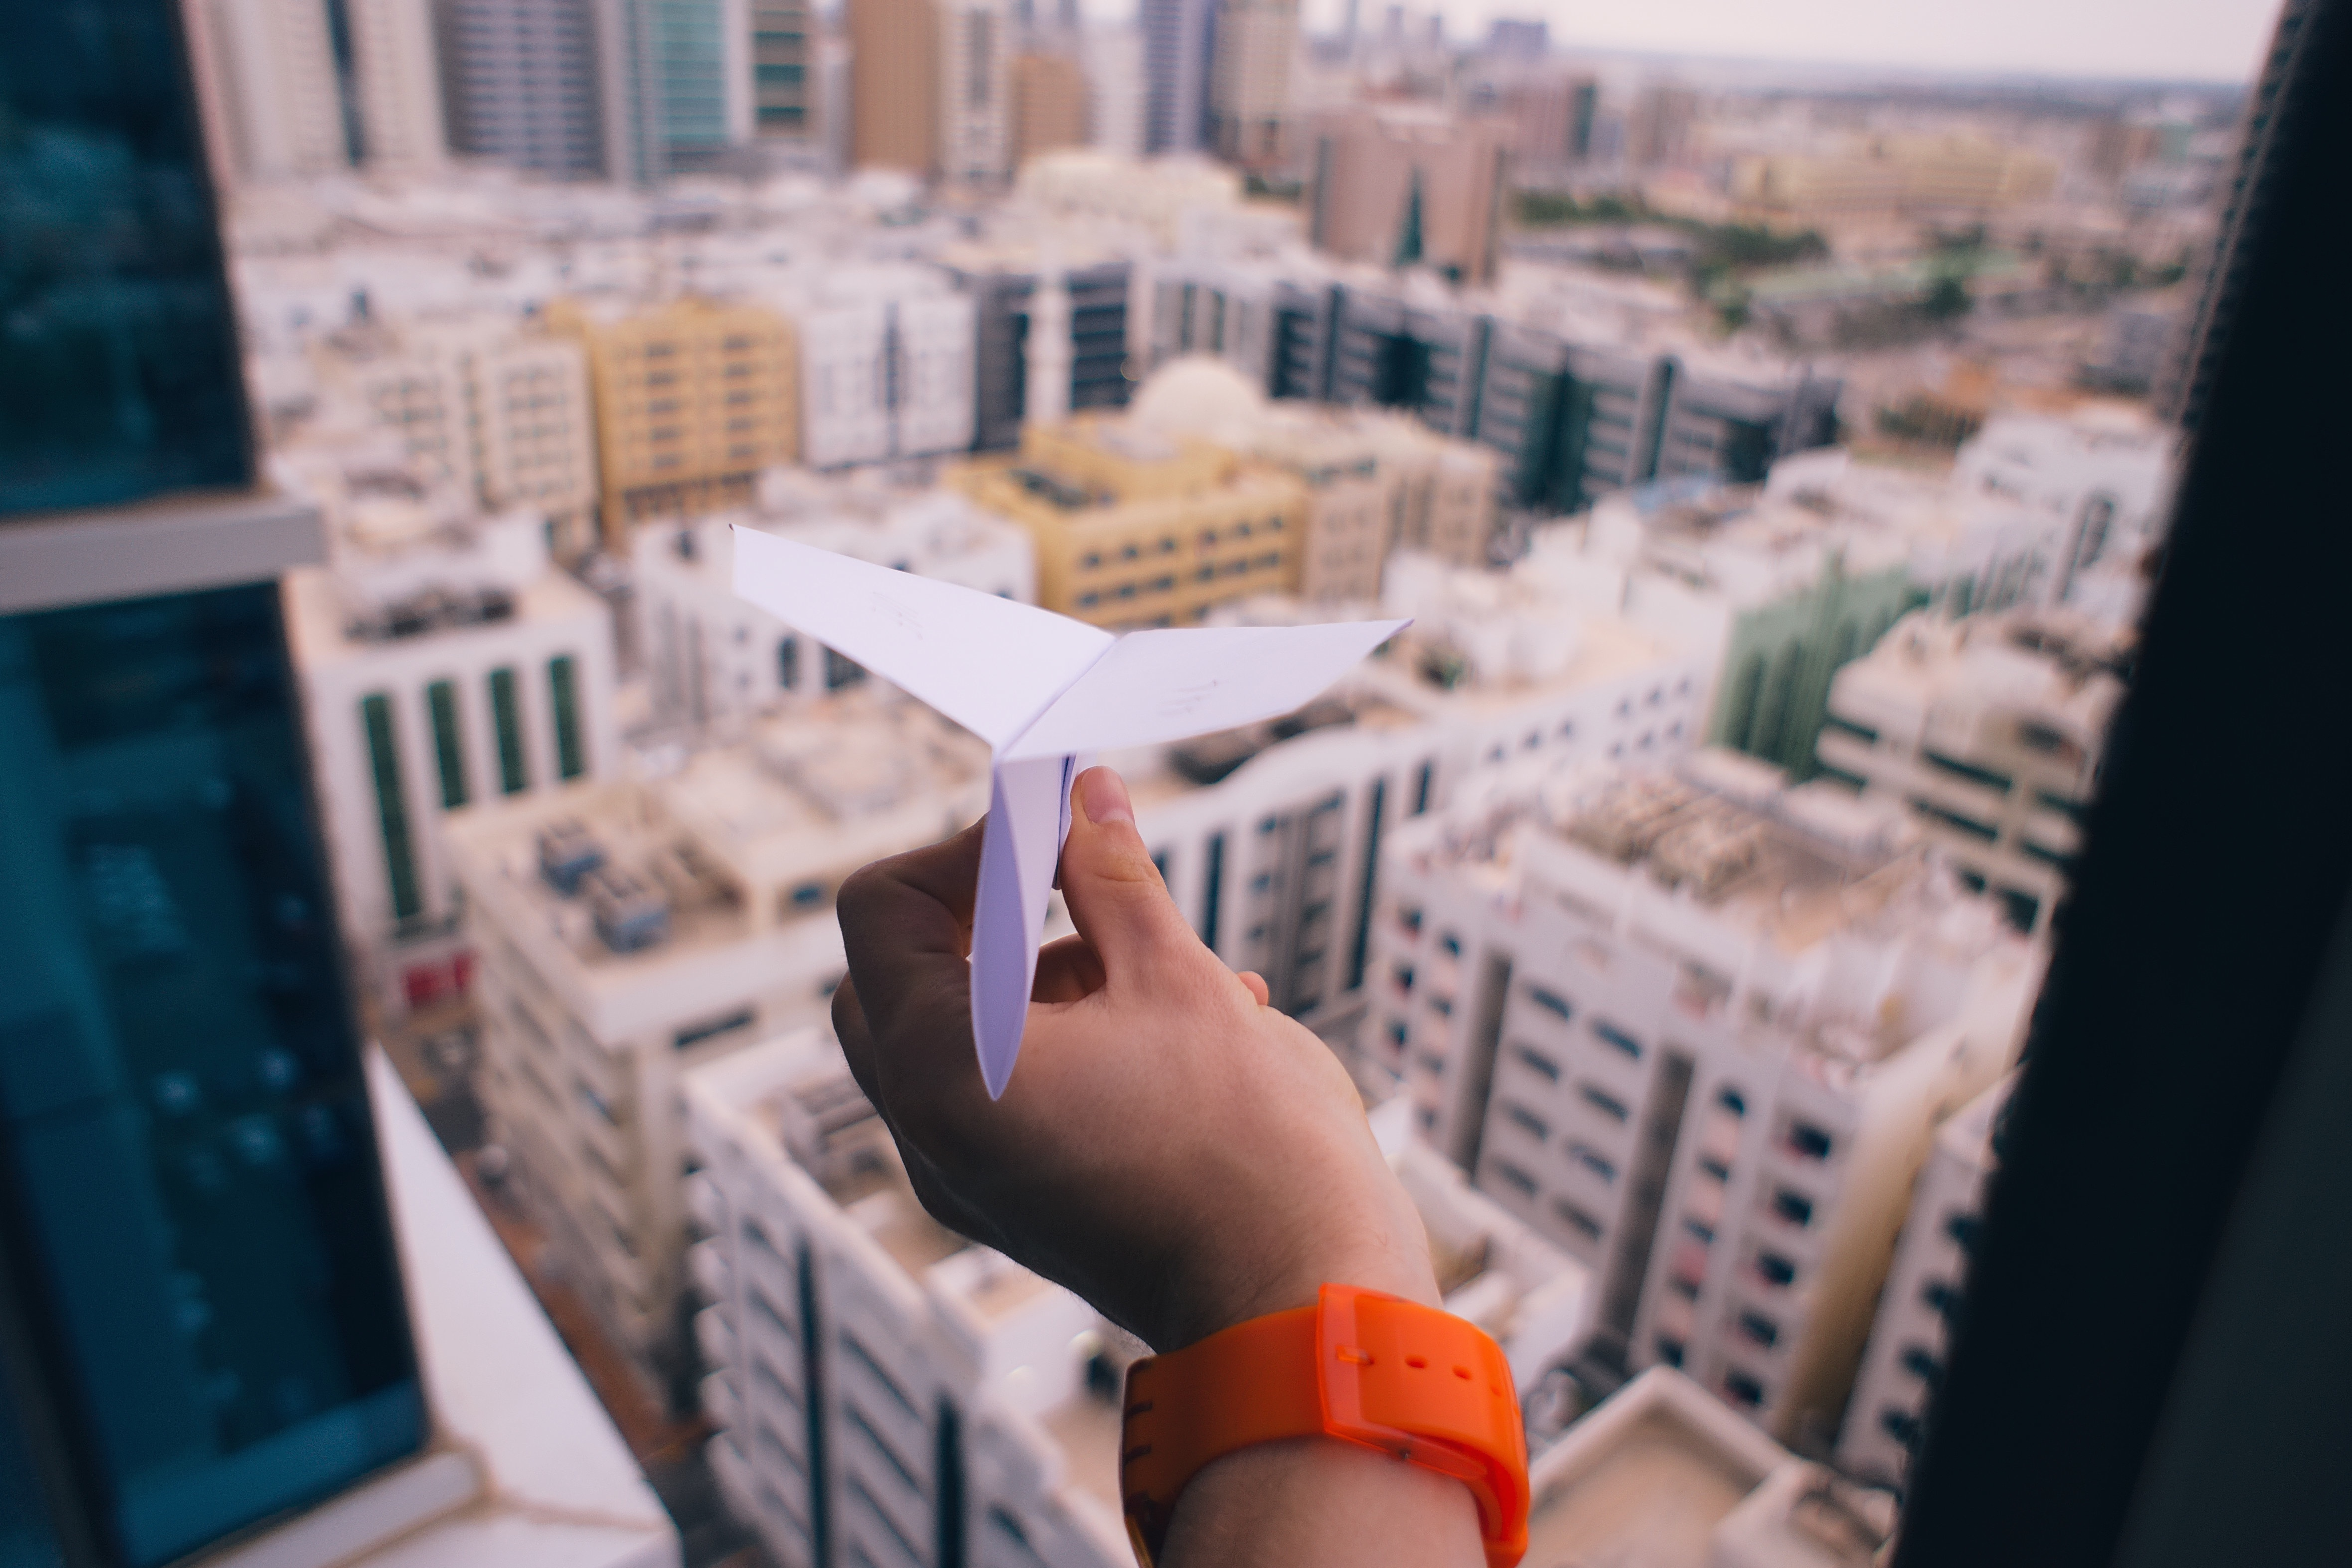 Paper airplane with city view